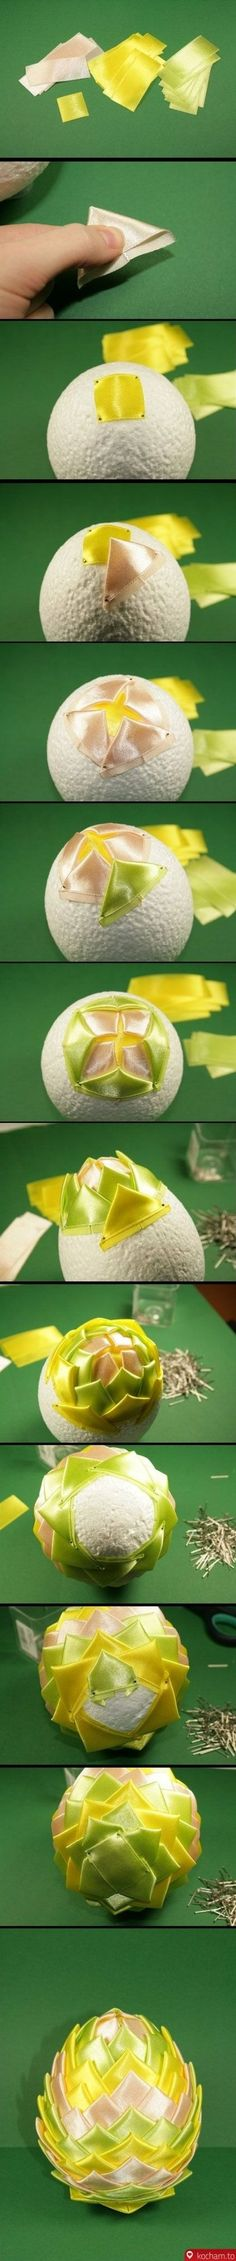 How to make Beautiful Flower Garnish step by step DIY tutorial instructions How to make Beautiful Flower Garnish step by step DIY tutorial instructions by Mary Smith fSesz Quilted Christmas Ornaments, Fabric Ornaments, Noel Christmas, Christmas Balls, All Things Christmas, Ball Ornaments, Christmas Colors, Christmas Projects, Easter Crafts